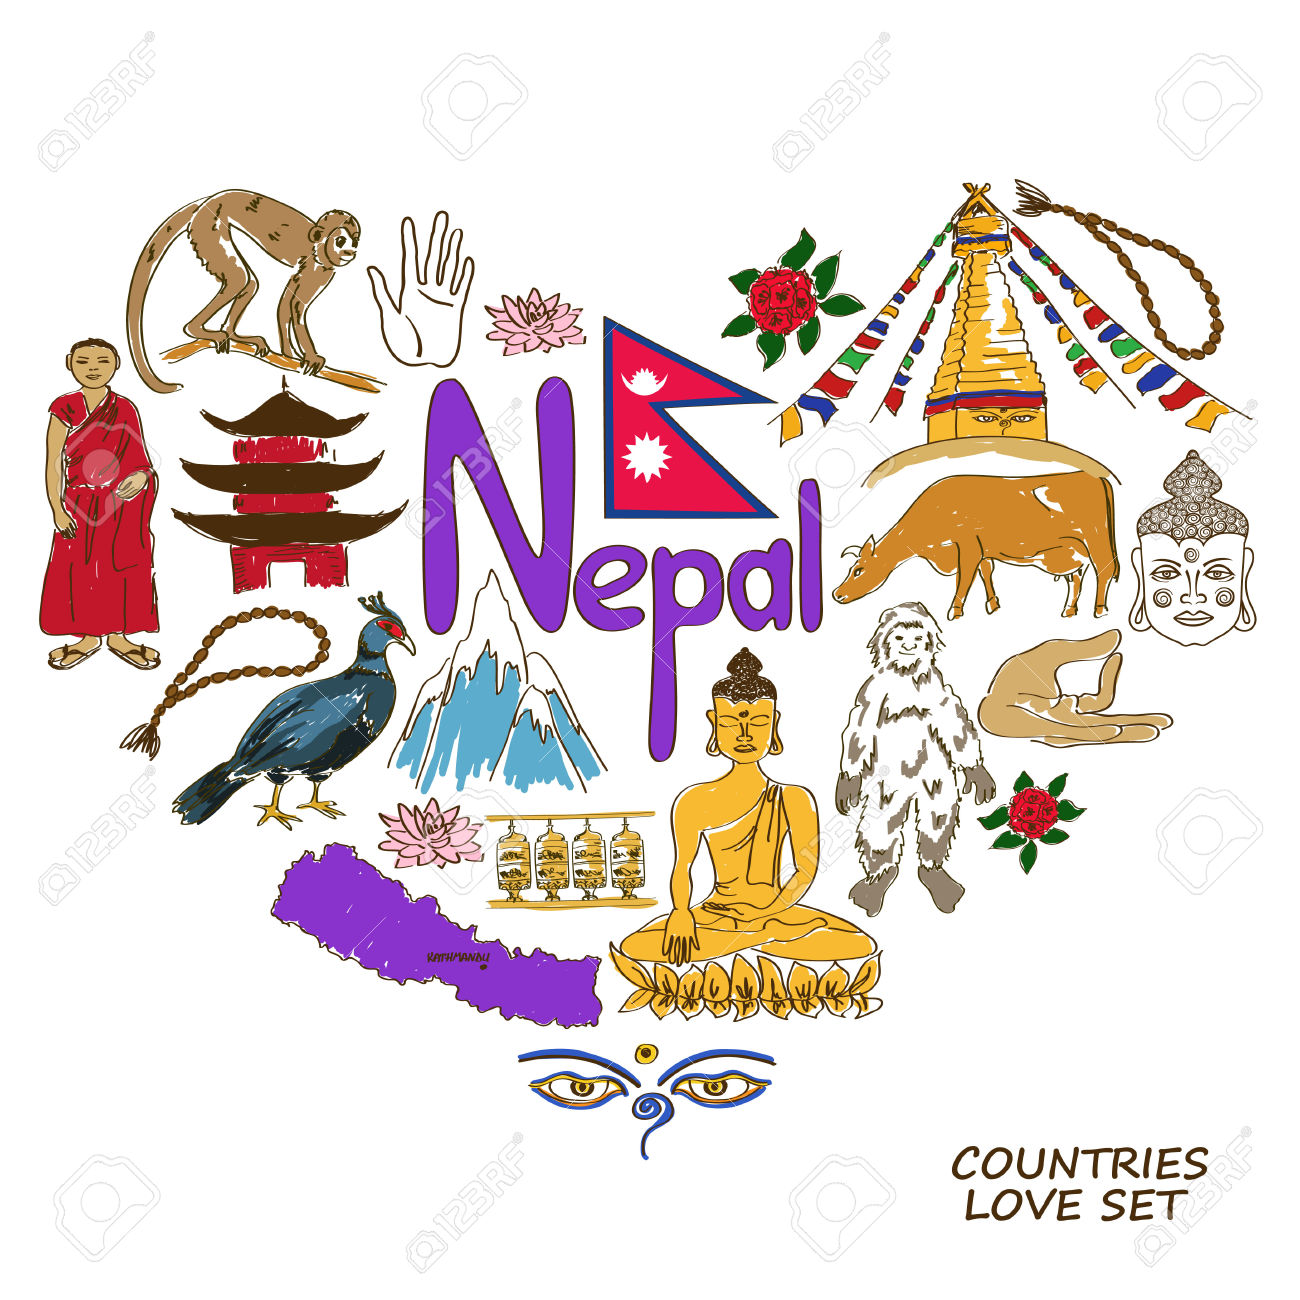 Nepal clipart #9, Download drawings